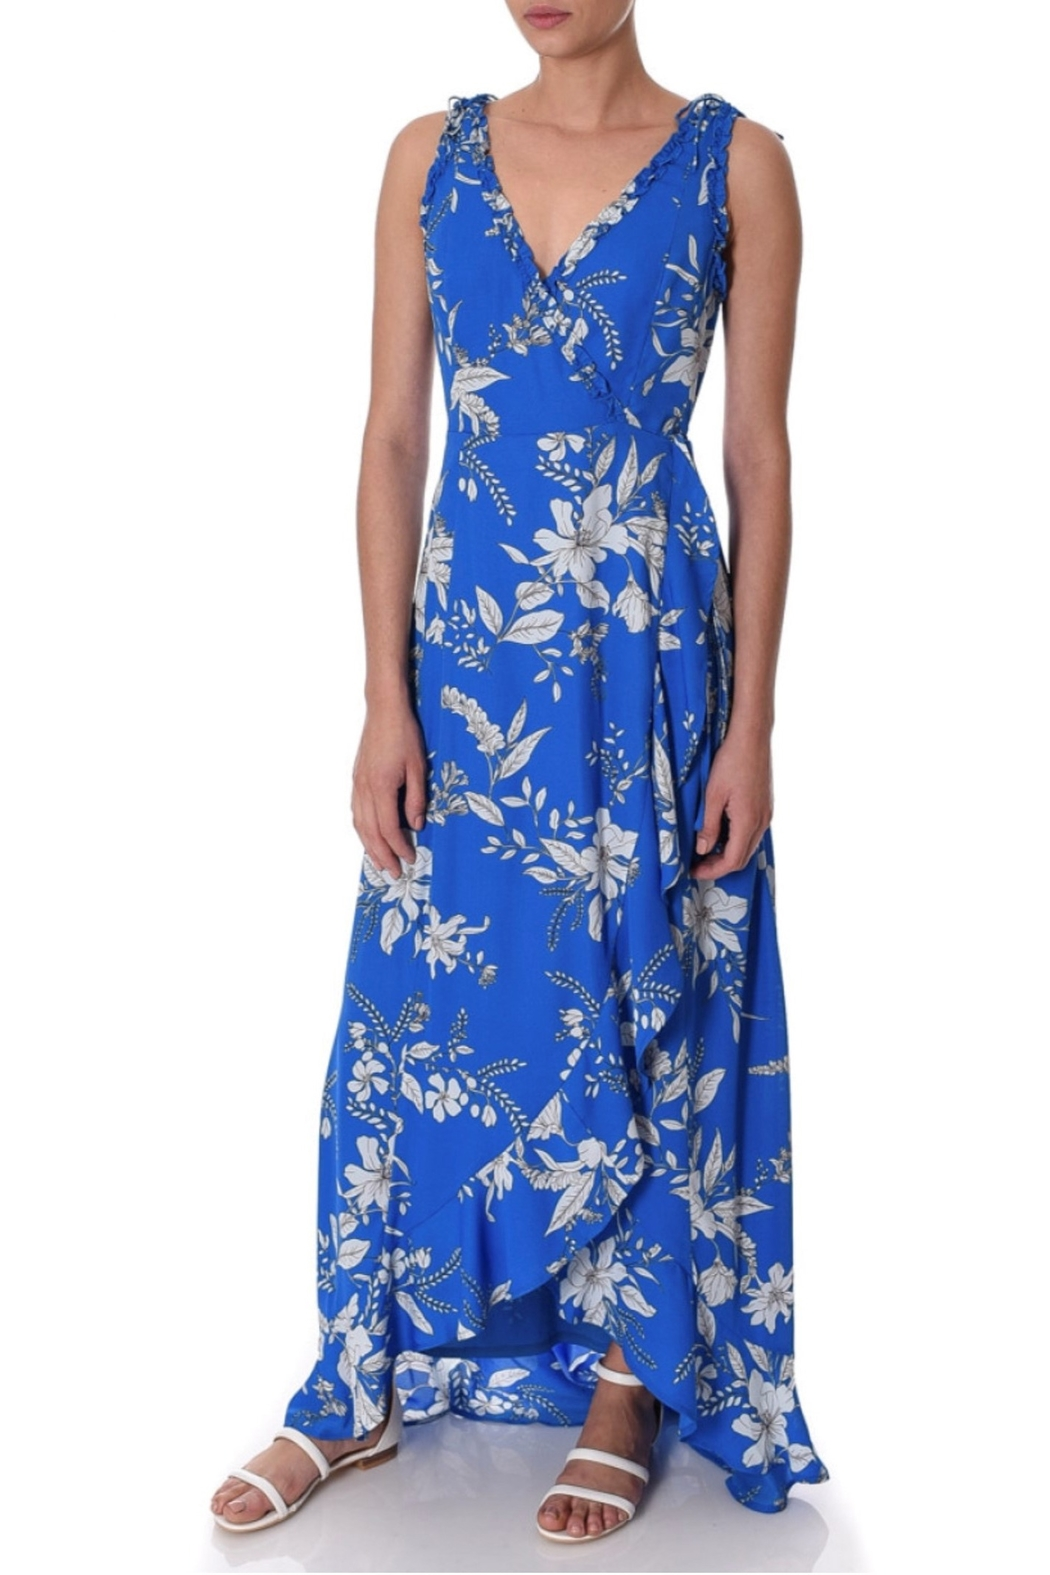 If By Sea Floral Maxi Dress - Main Image